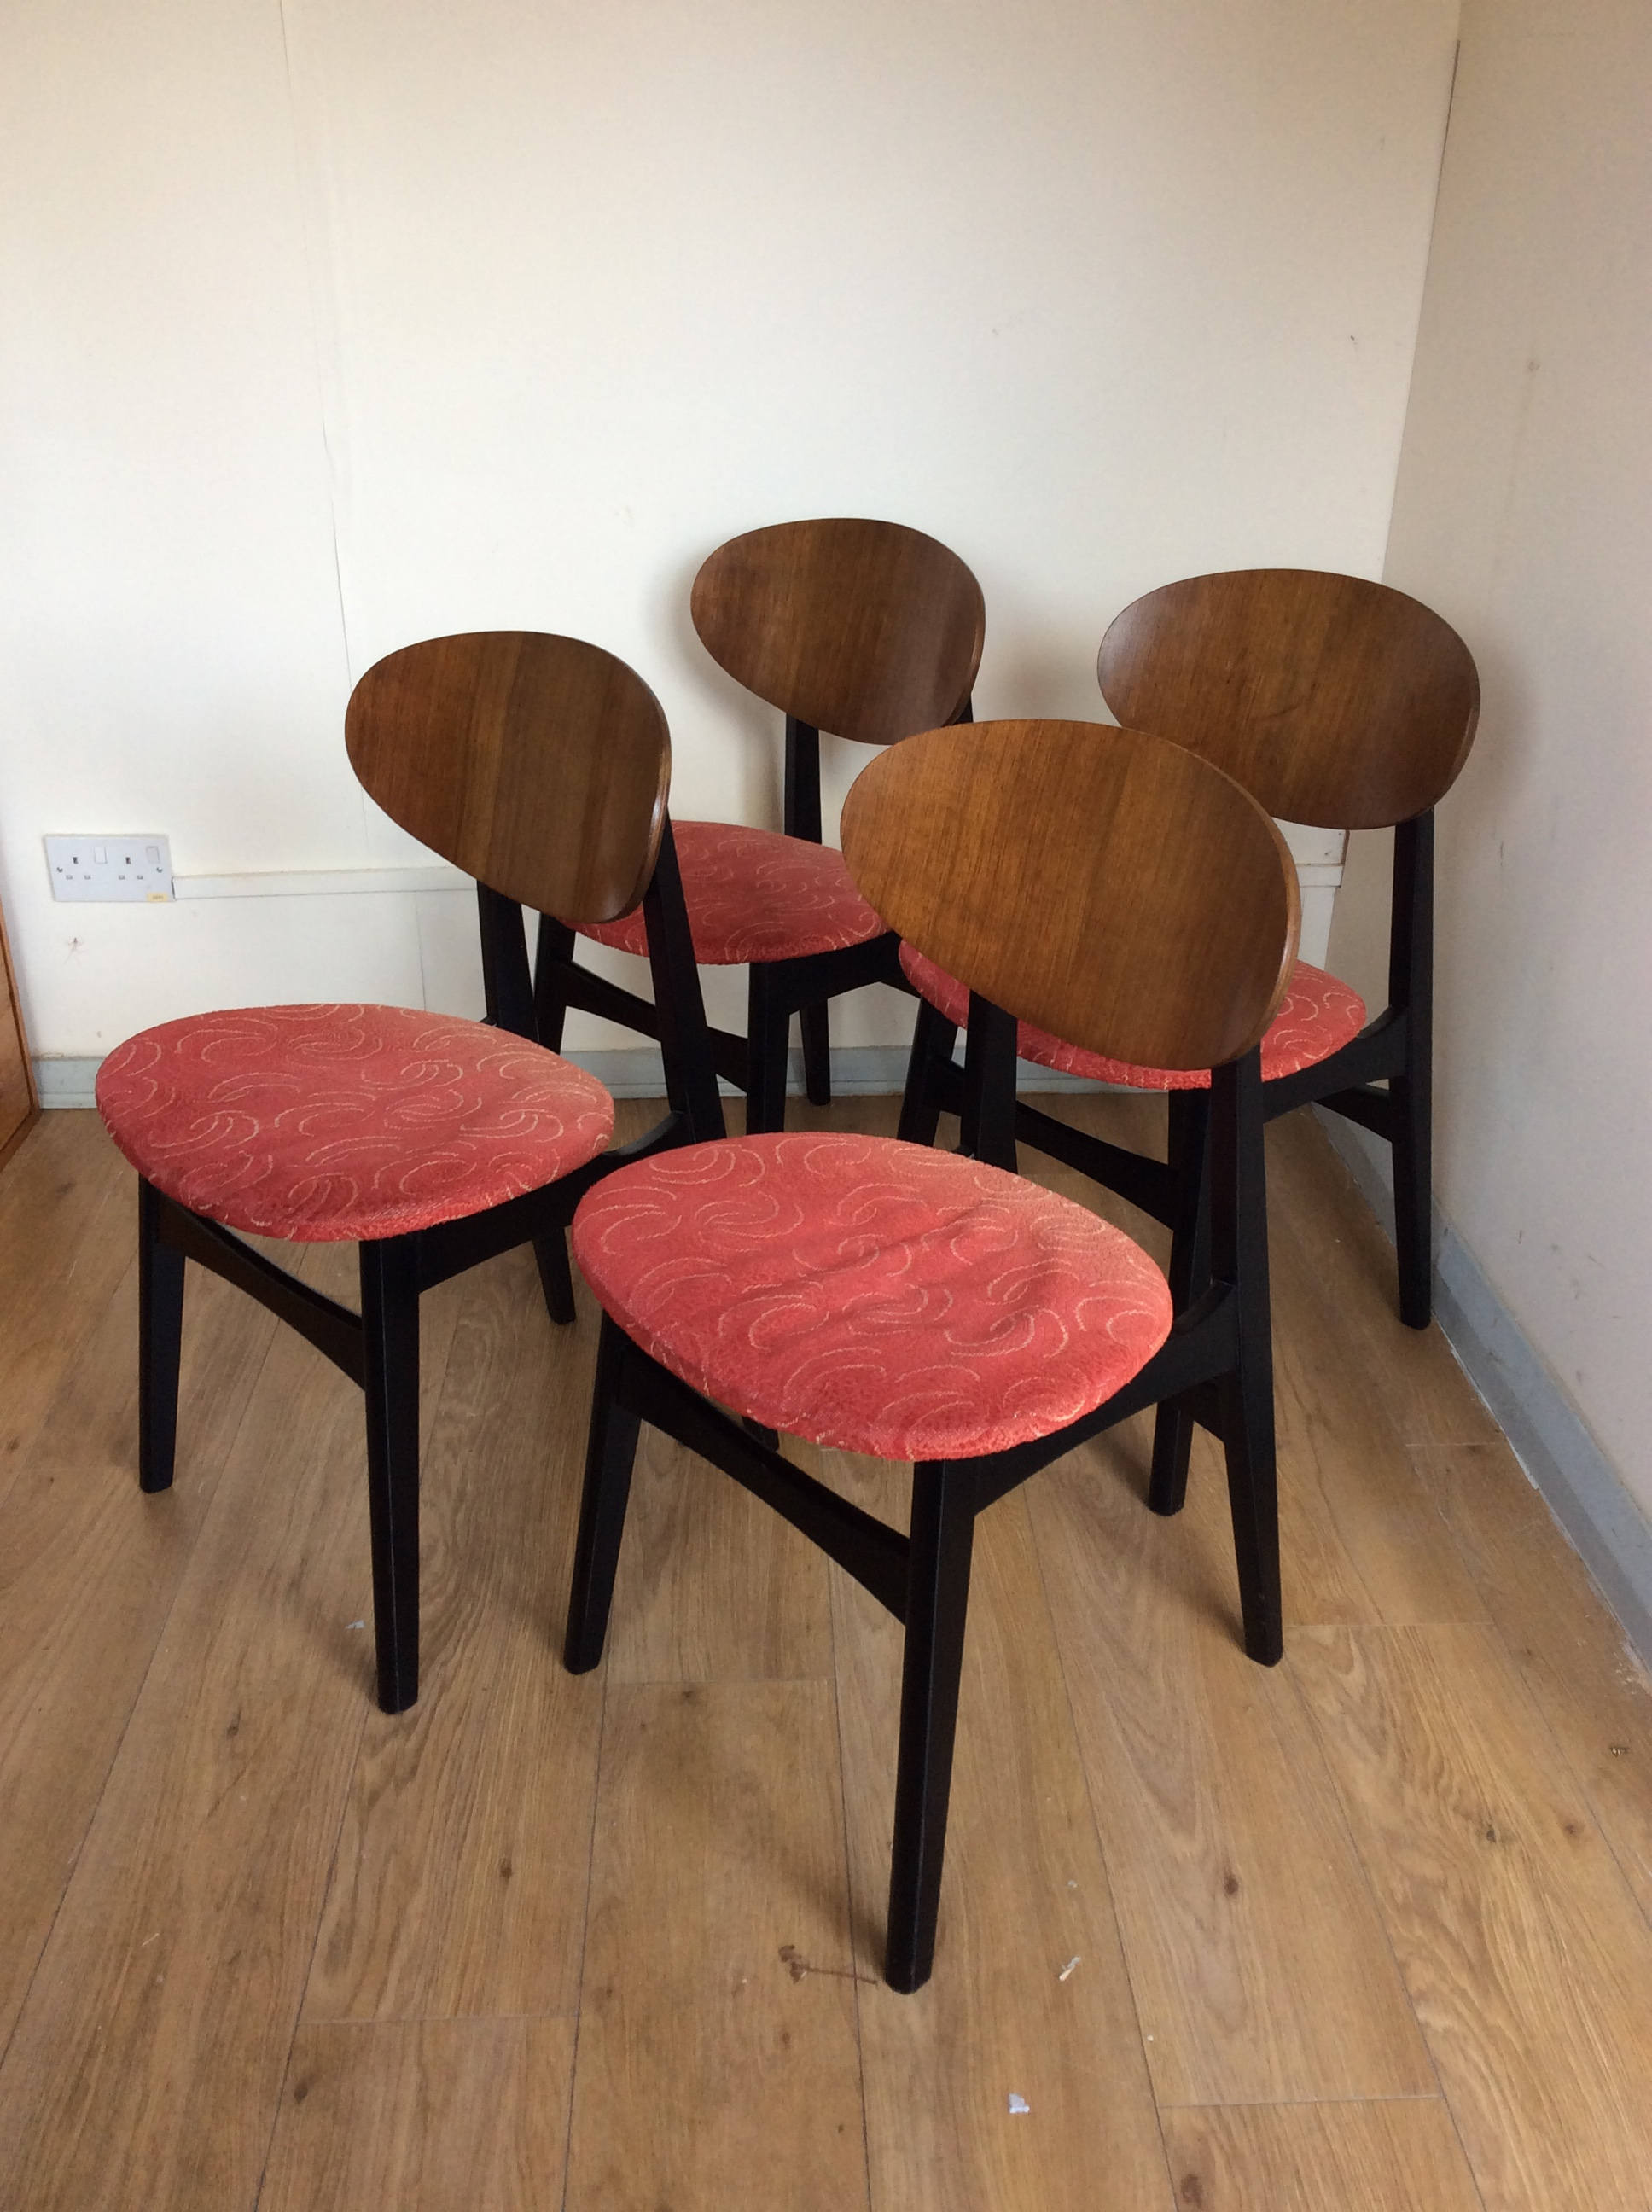 Beautility Chairs Dining Room